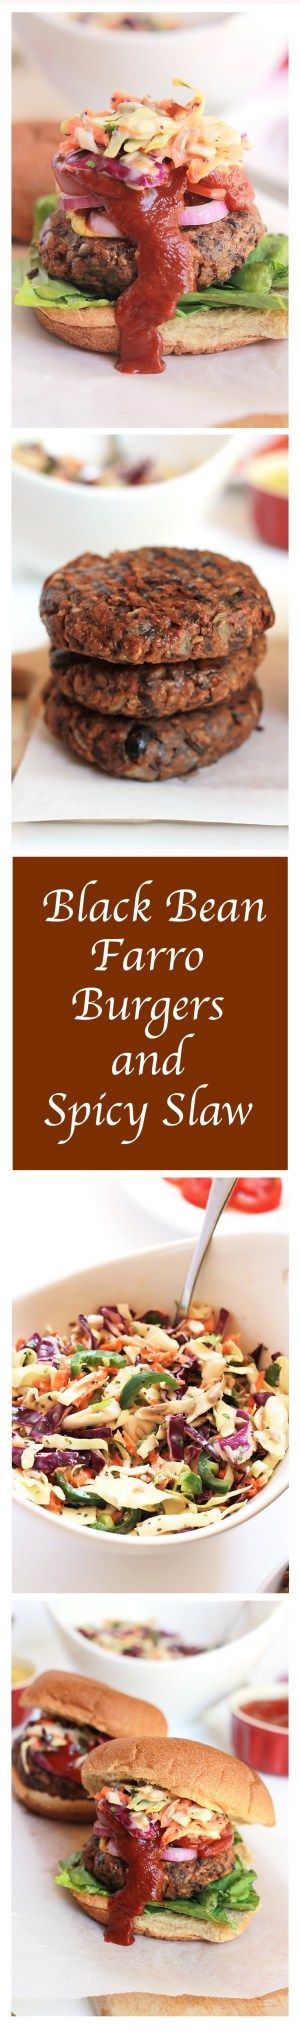 Simply delicious and full of flavor, you have to give this Black Bean Farro Burger a try, and serve it with this super tasty Spicy Slaw. Let's talk vegg